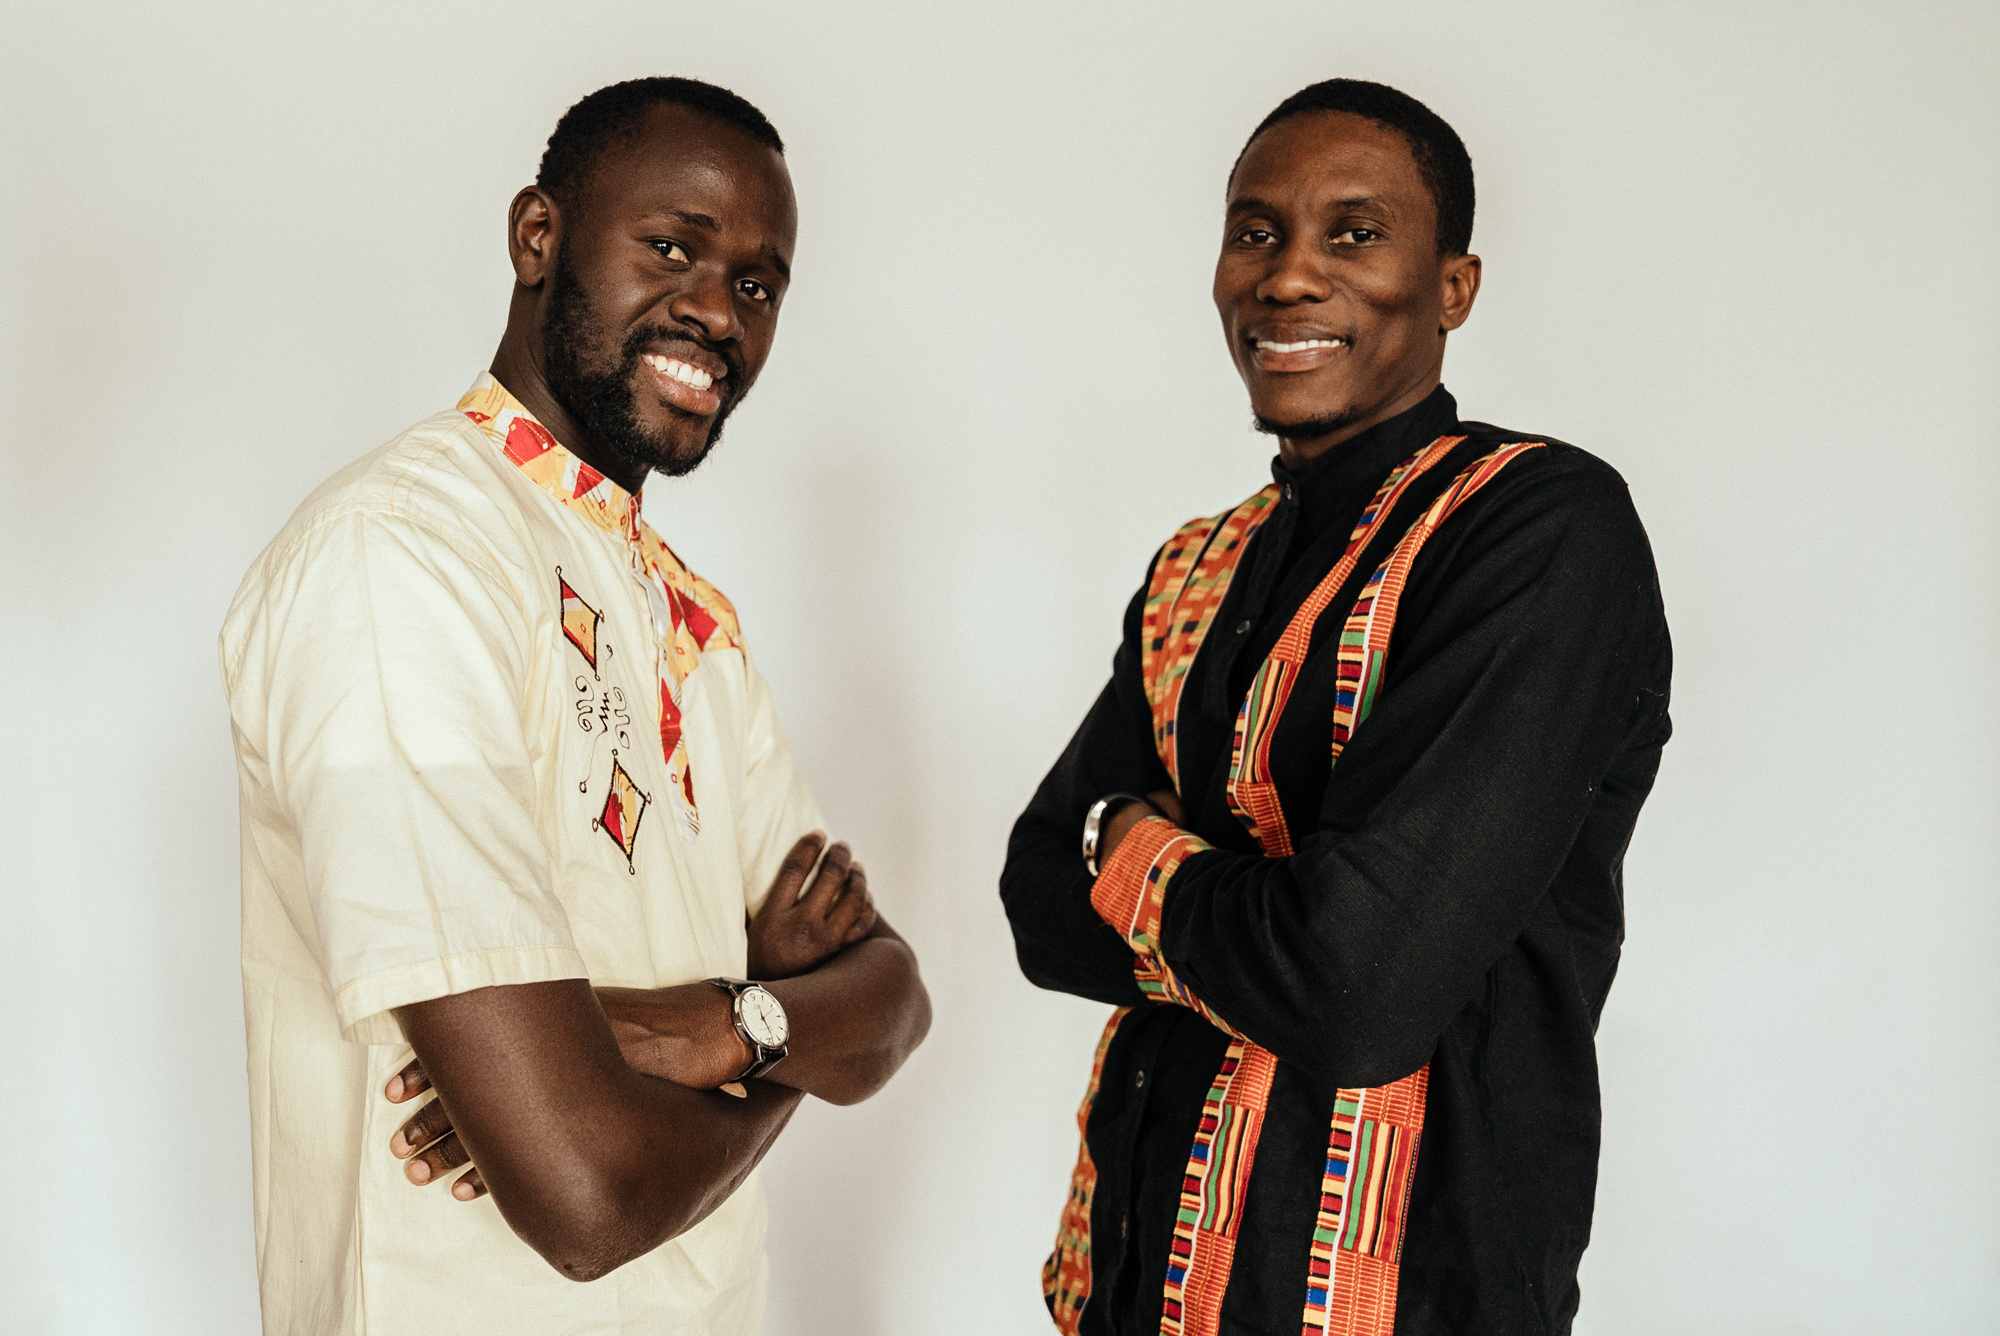 WOLOF GLOBAL TEAM HIGHLIGHT - Team Leaders: Etienne & Jean Jacques